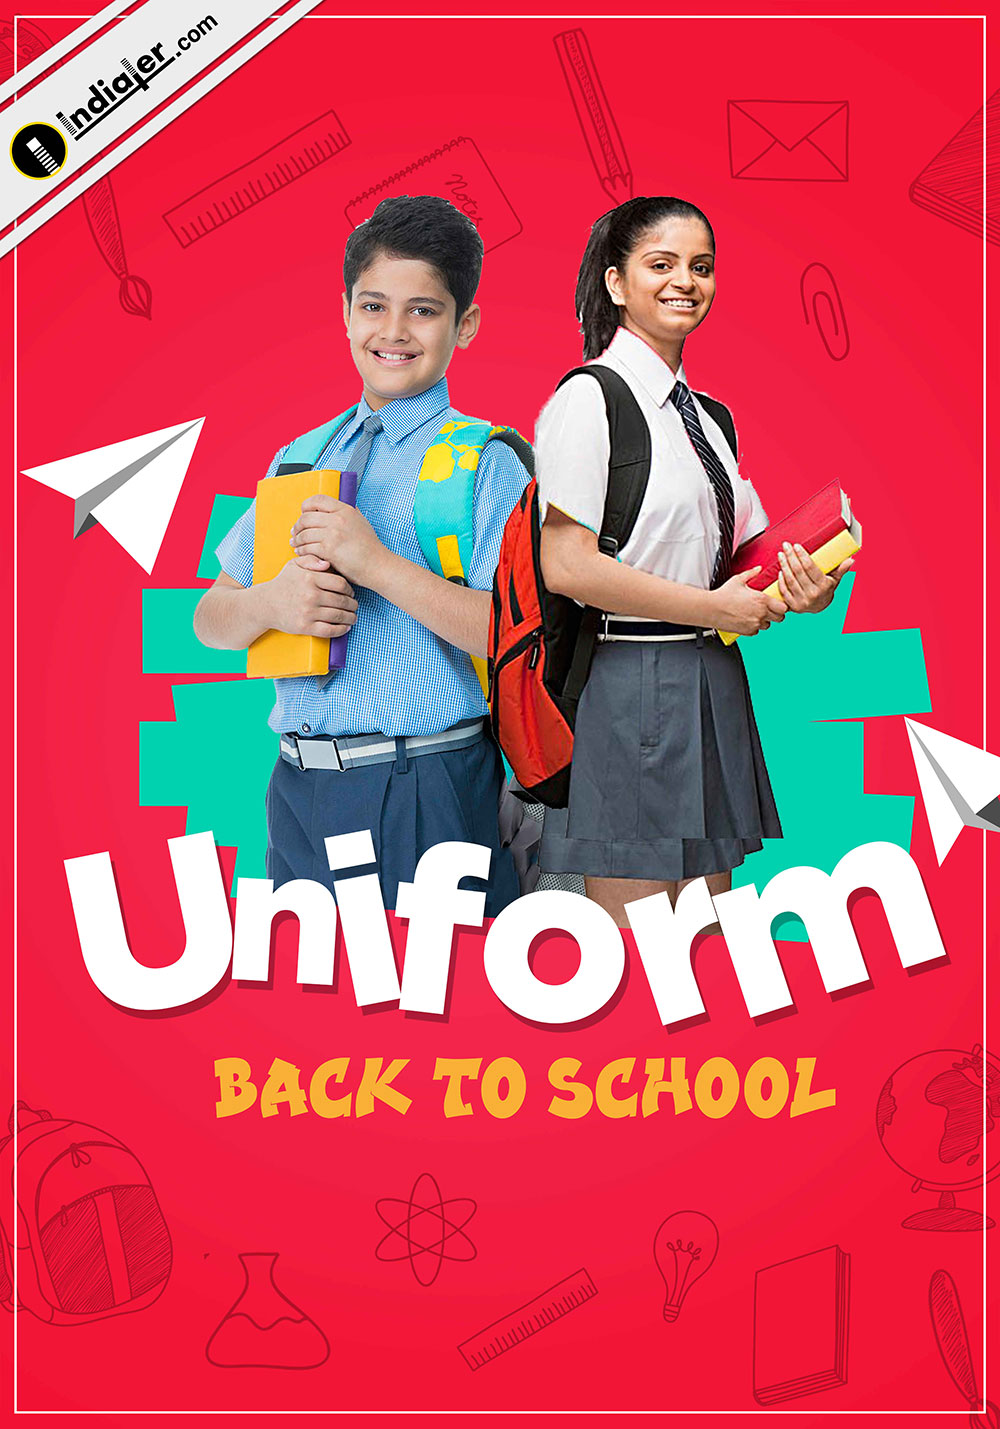 creative-school-uniforms-banner-free-psd-template